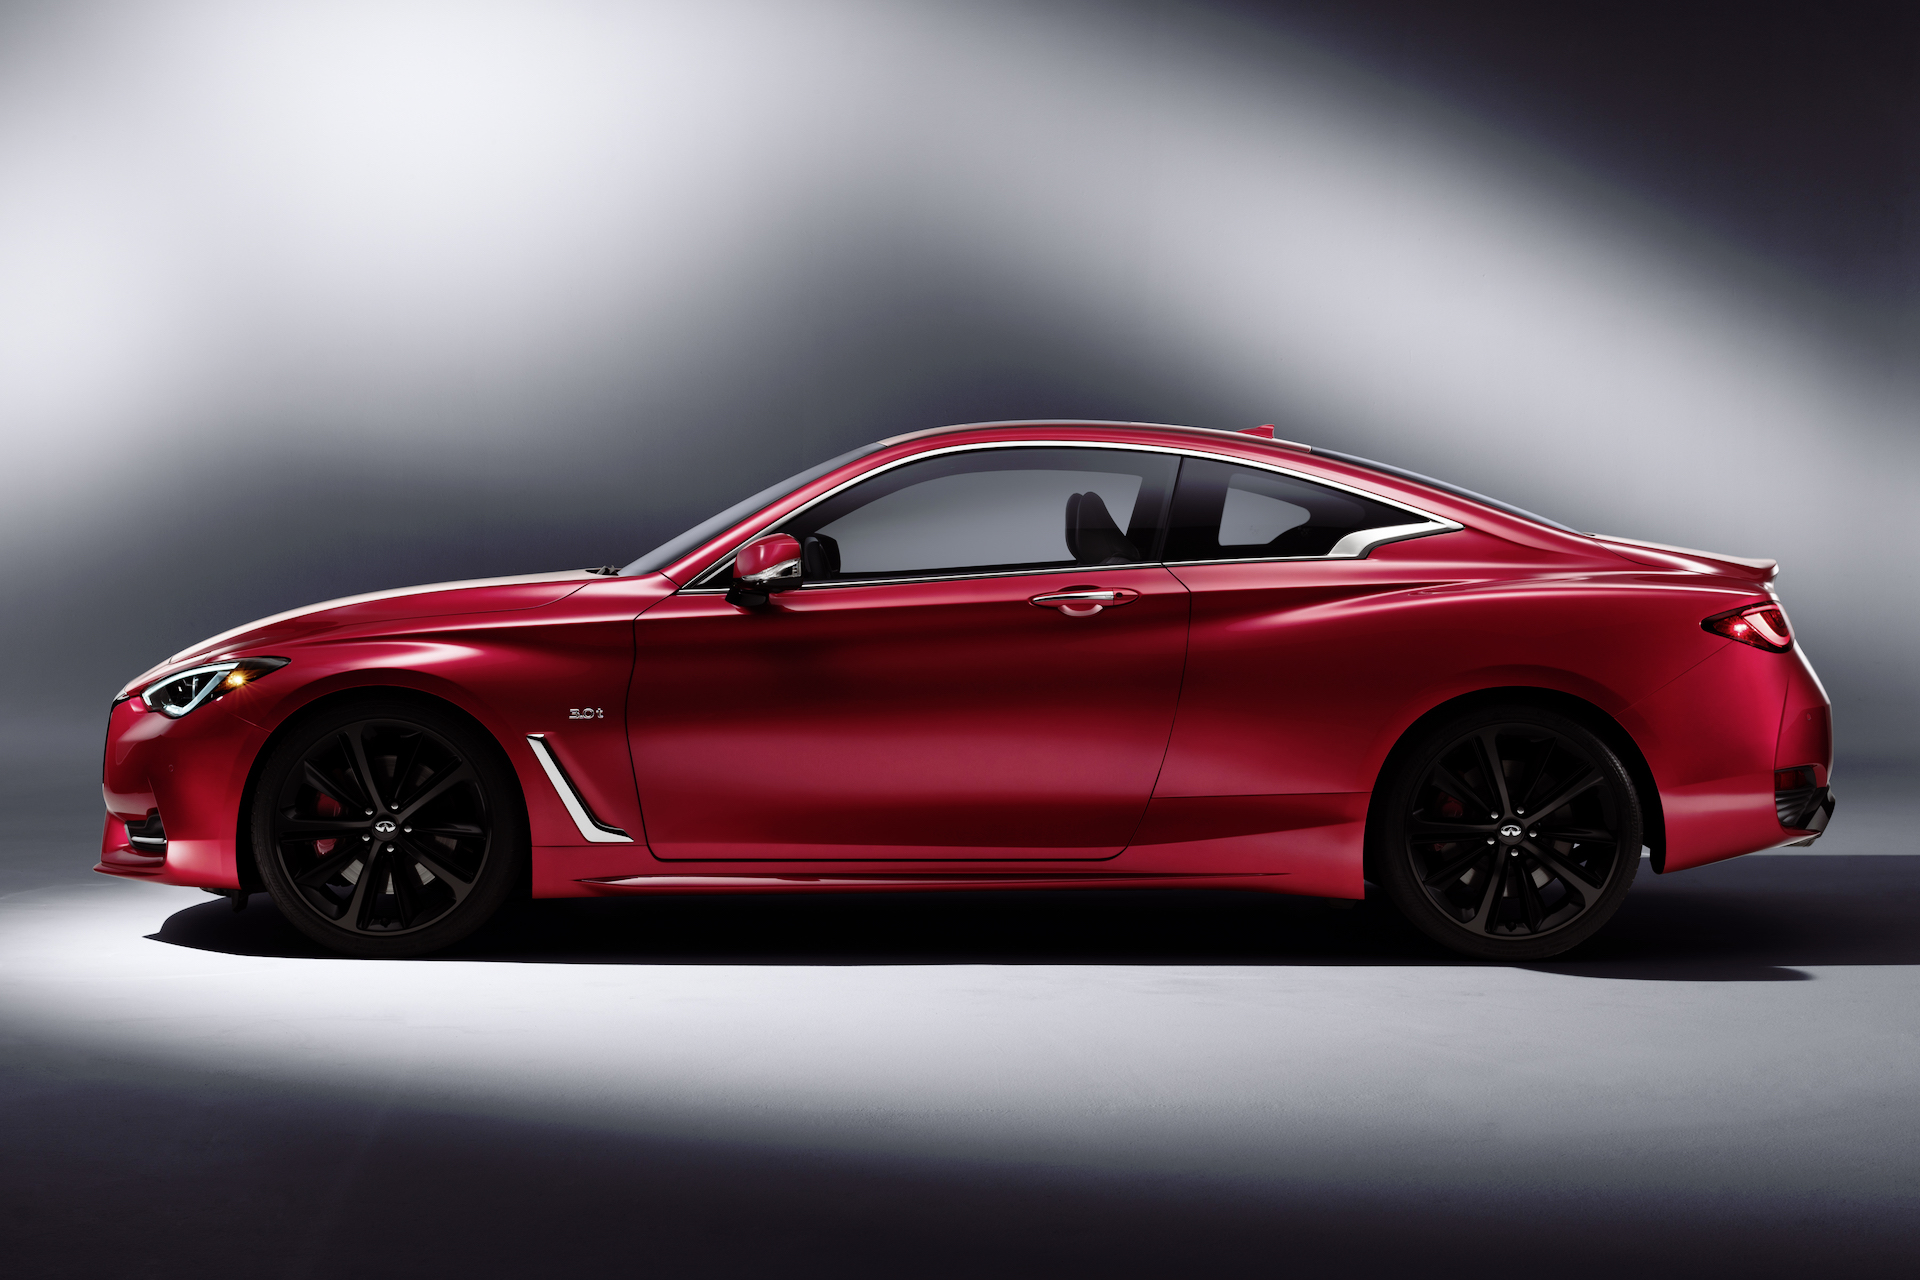 13 A 2020 Infiniti Q60 Coupe Ipl Engine